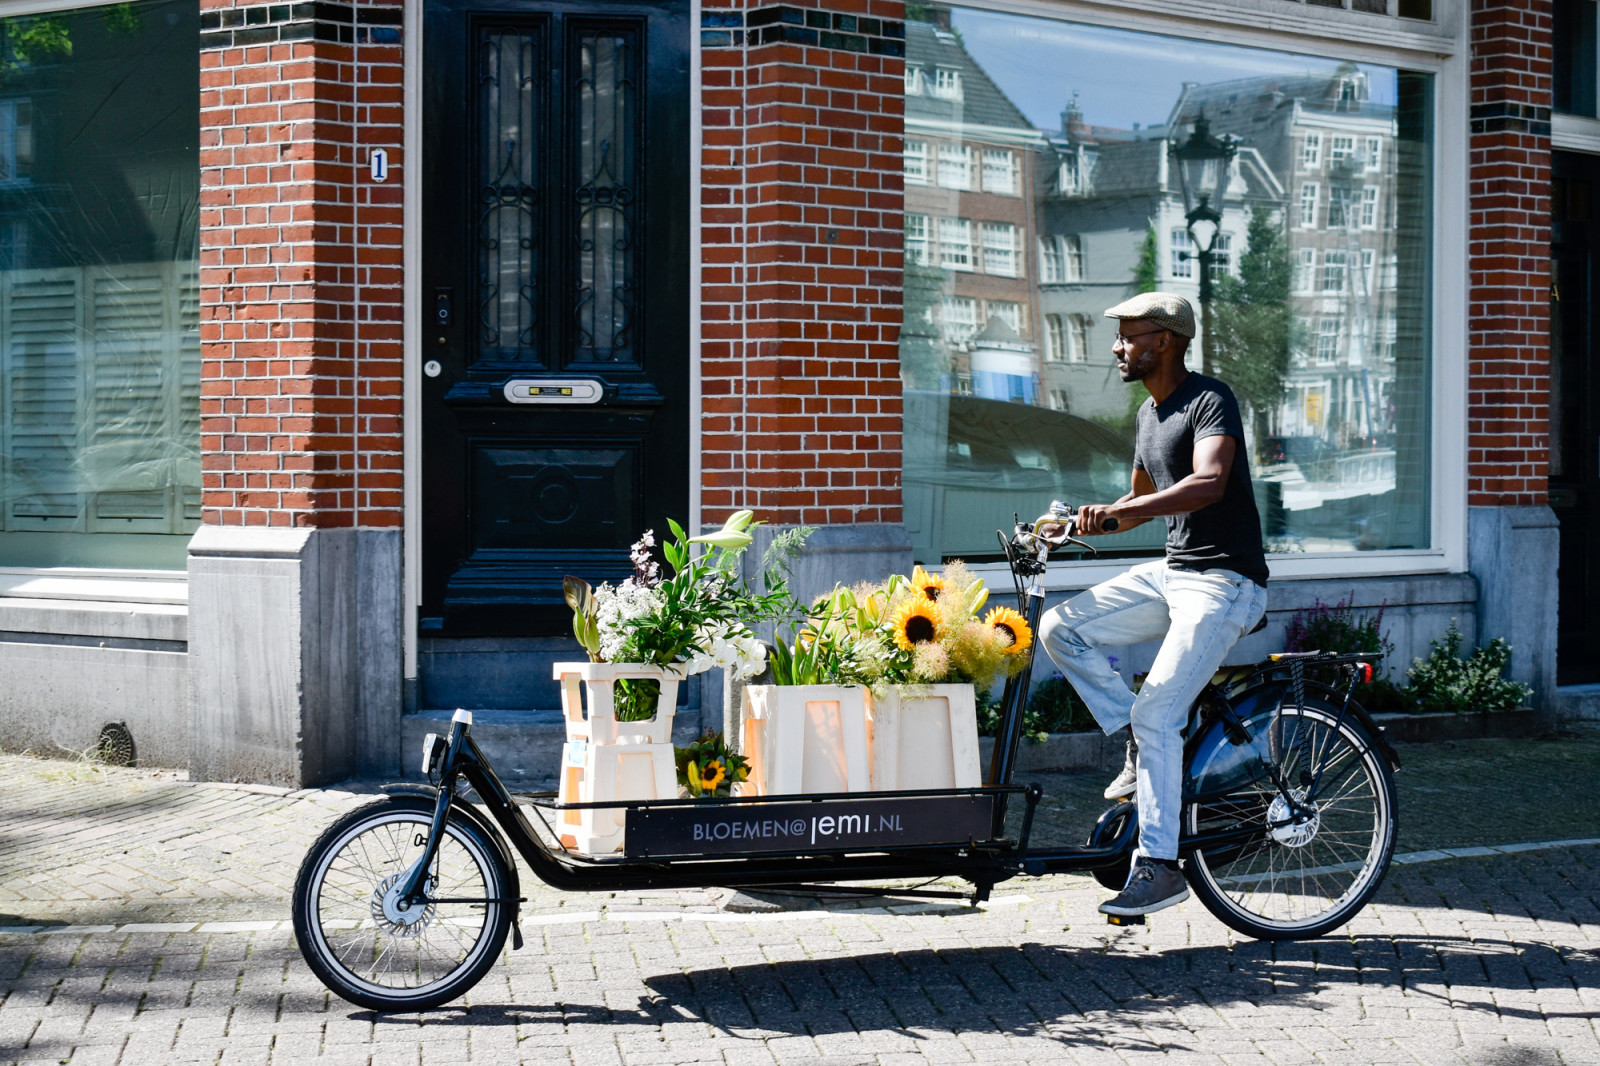 bike-with-flowers-in-amsterdam